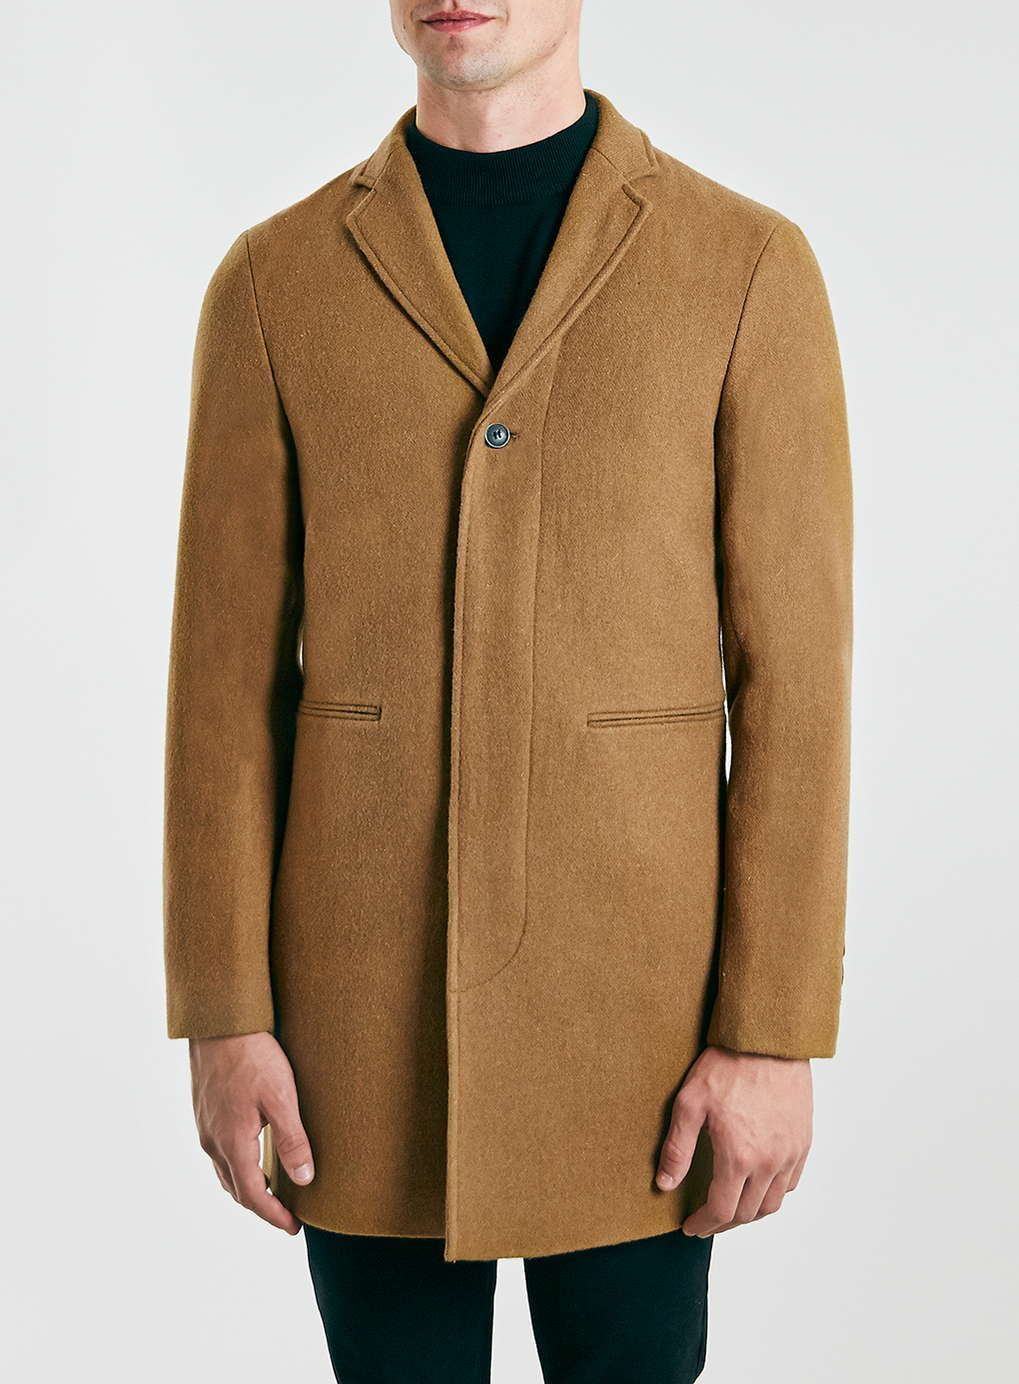 Selected Homme Wool Blend Camel Coat | Coats, Wool and Camel